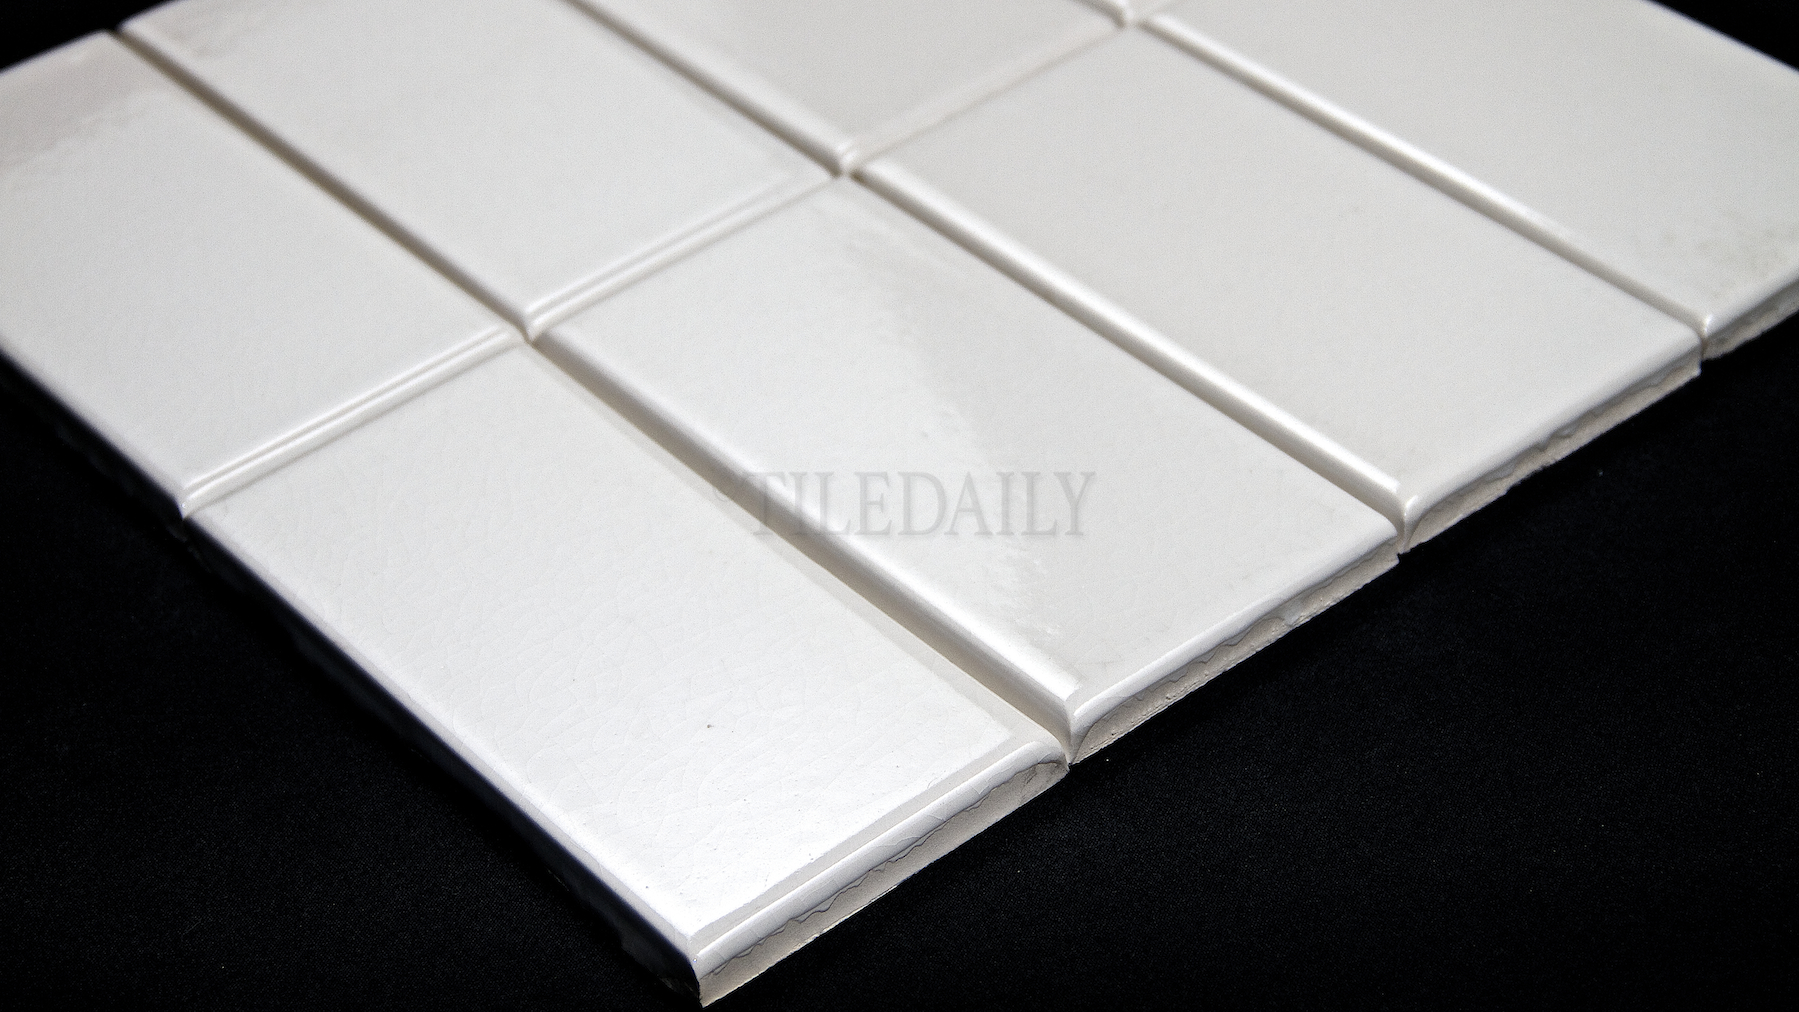 Subway tiledaily crackle glazed subway tile white 21tiledaily10p0080 3x6 crackle glazed porcelain tile whitep0080 3x6 crackle glazed porcelain tile whitep0080 3x6 dailygadgetfo Choice Image